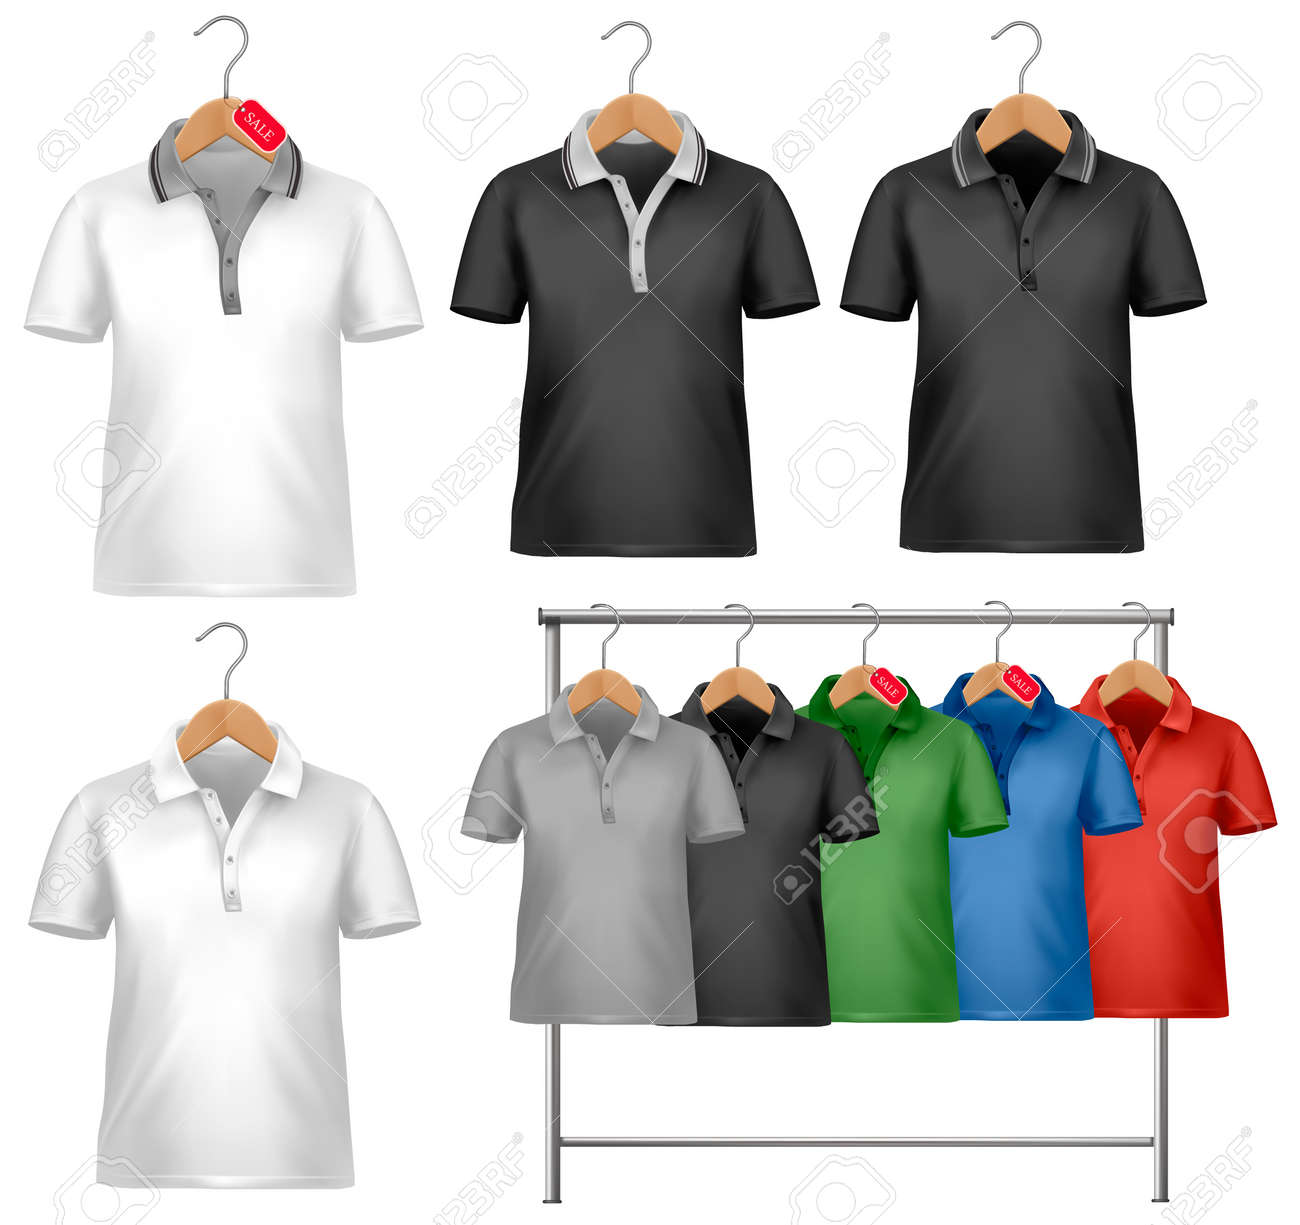 Shirt design illustrator template - Vector White And Colorful T Shirt Design Template Clothes Hanger With Shirts With Price Tags Vector Illustration